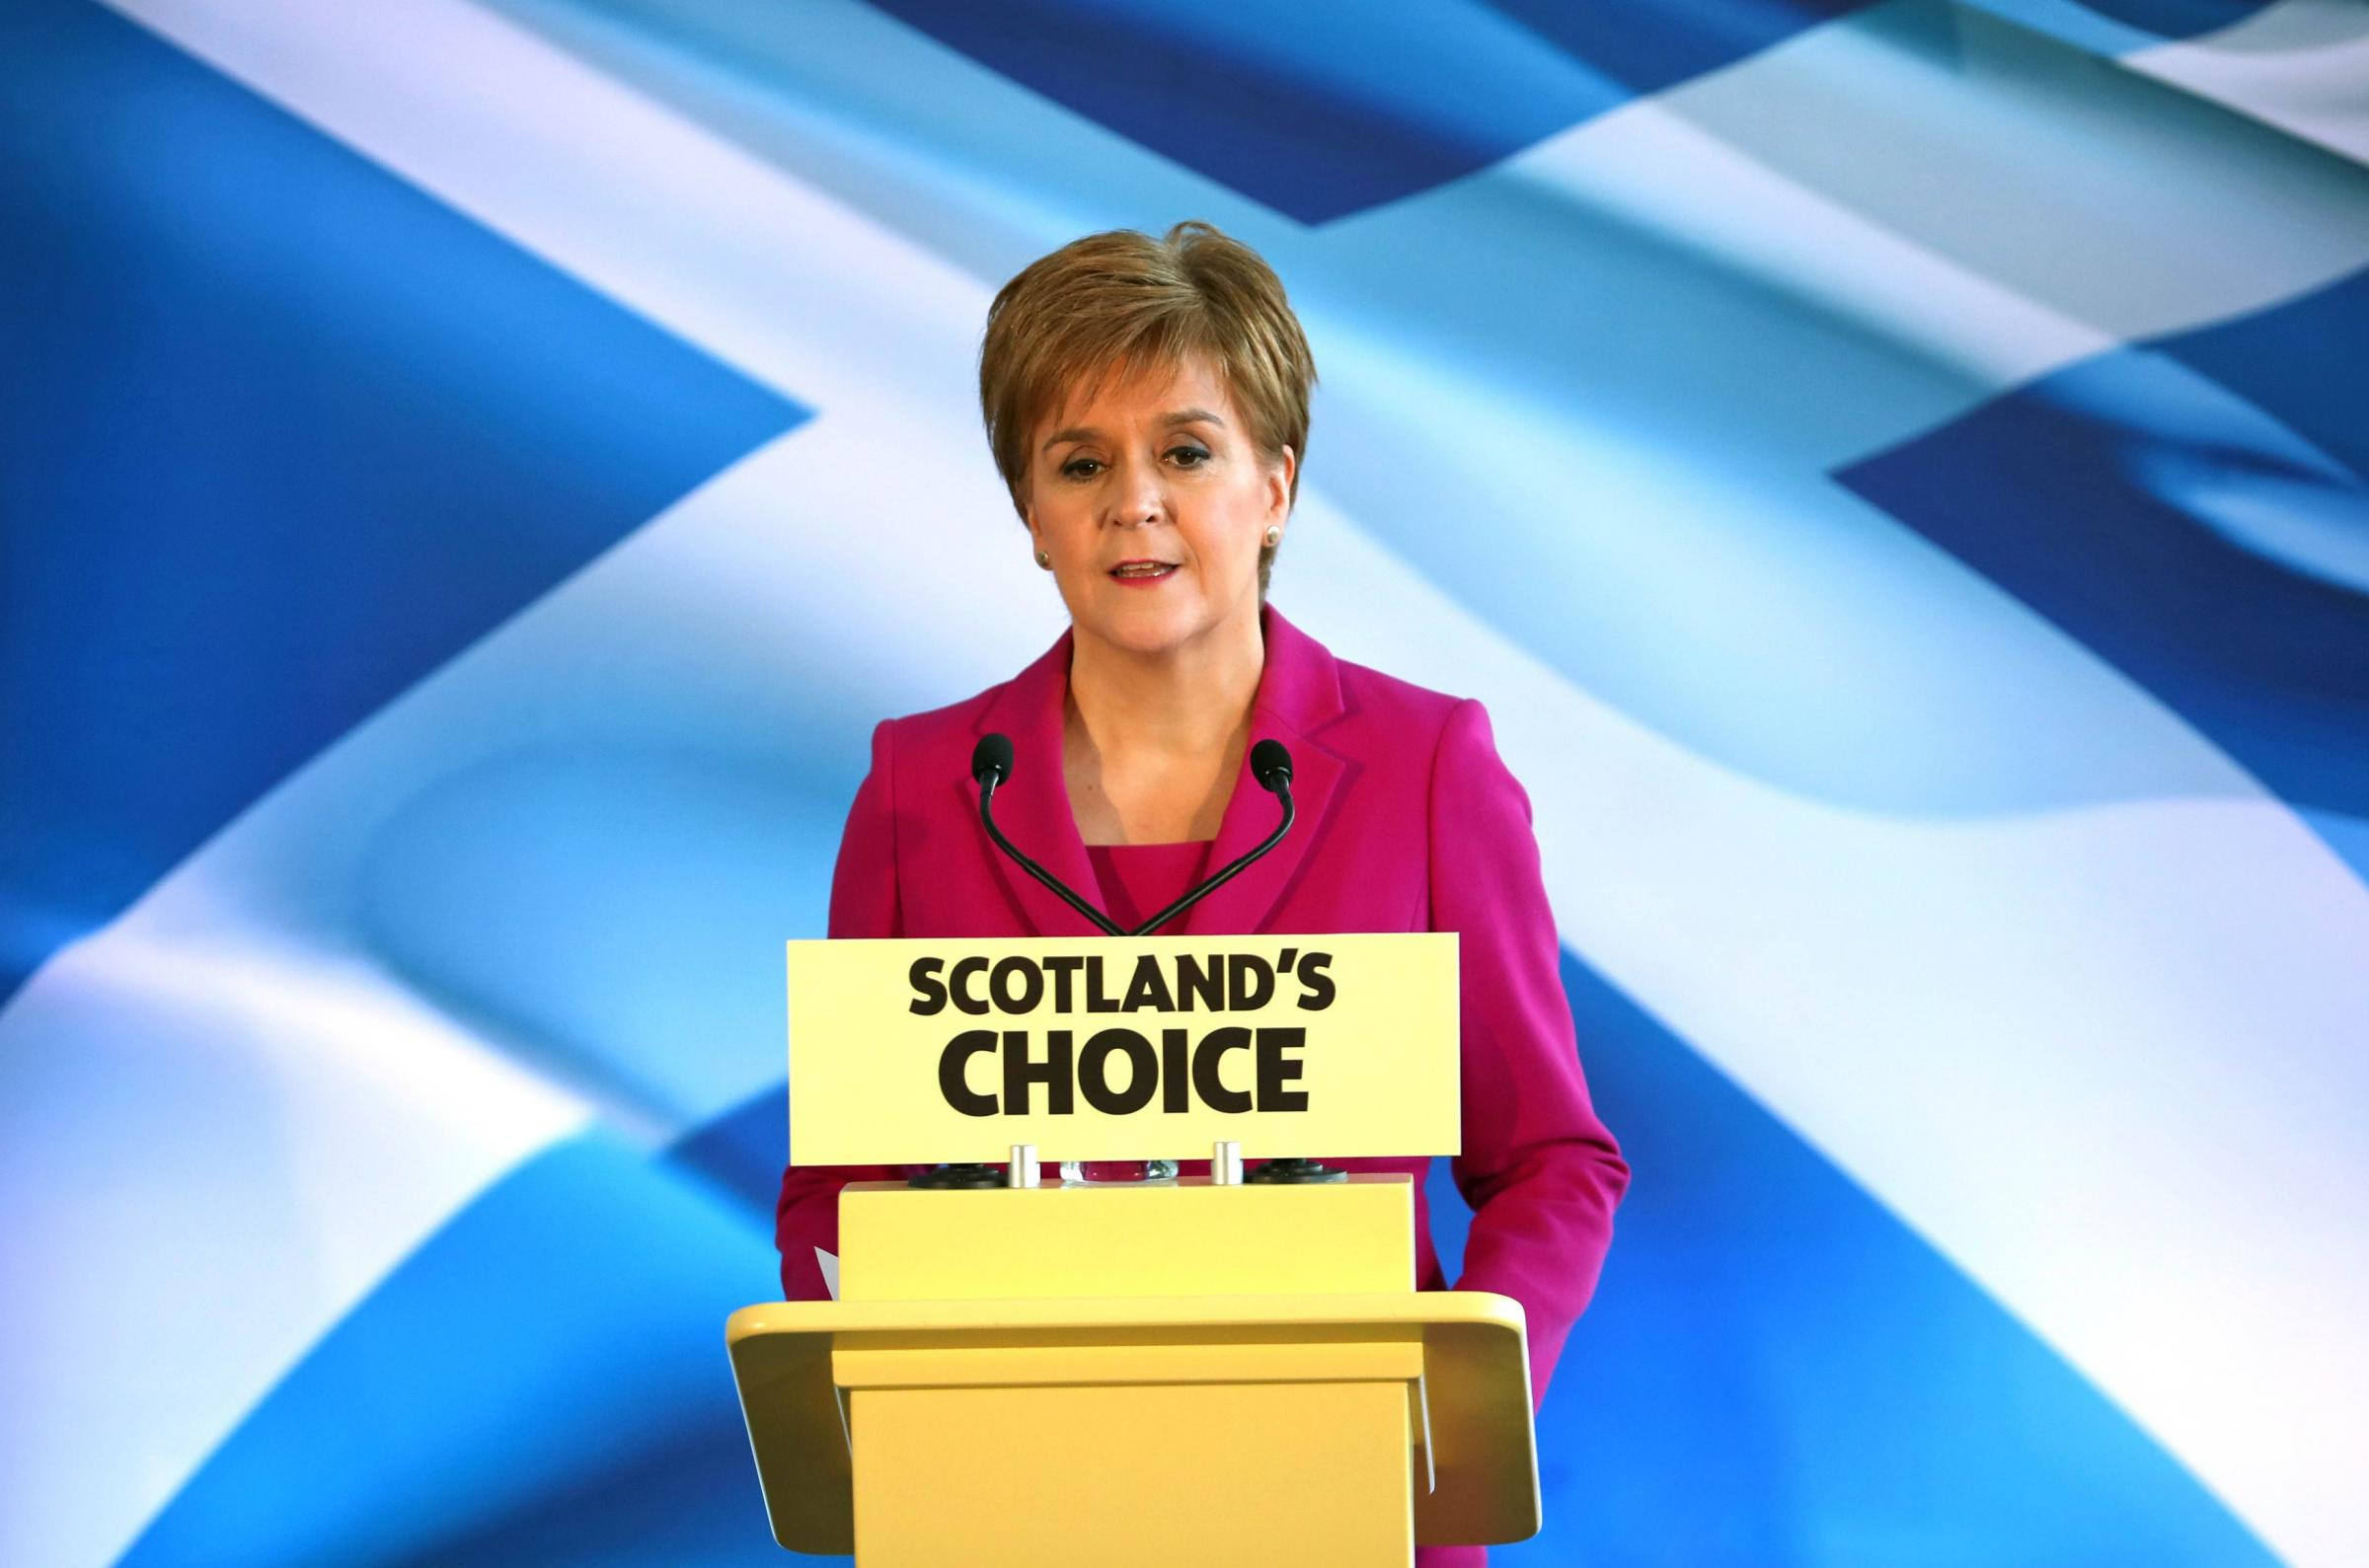 Independence referendum could 'absolutely' happen this year, says Nicola Sturgeon